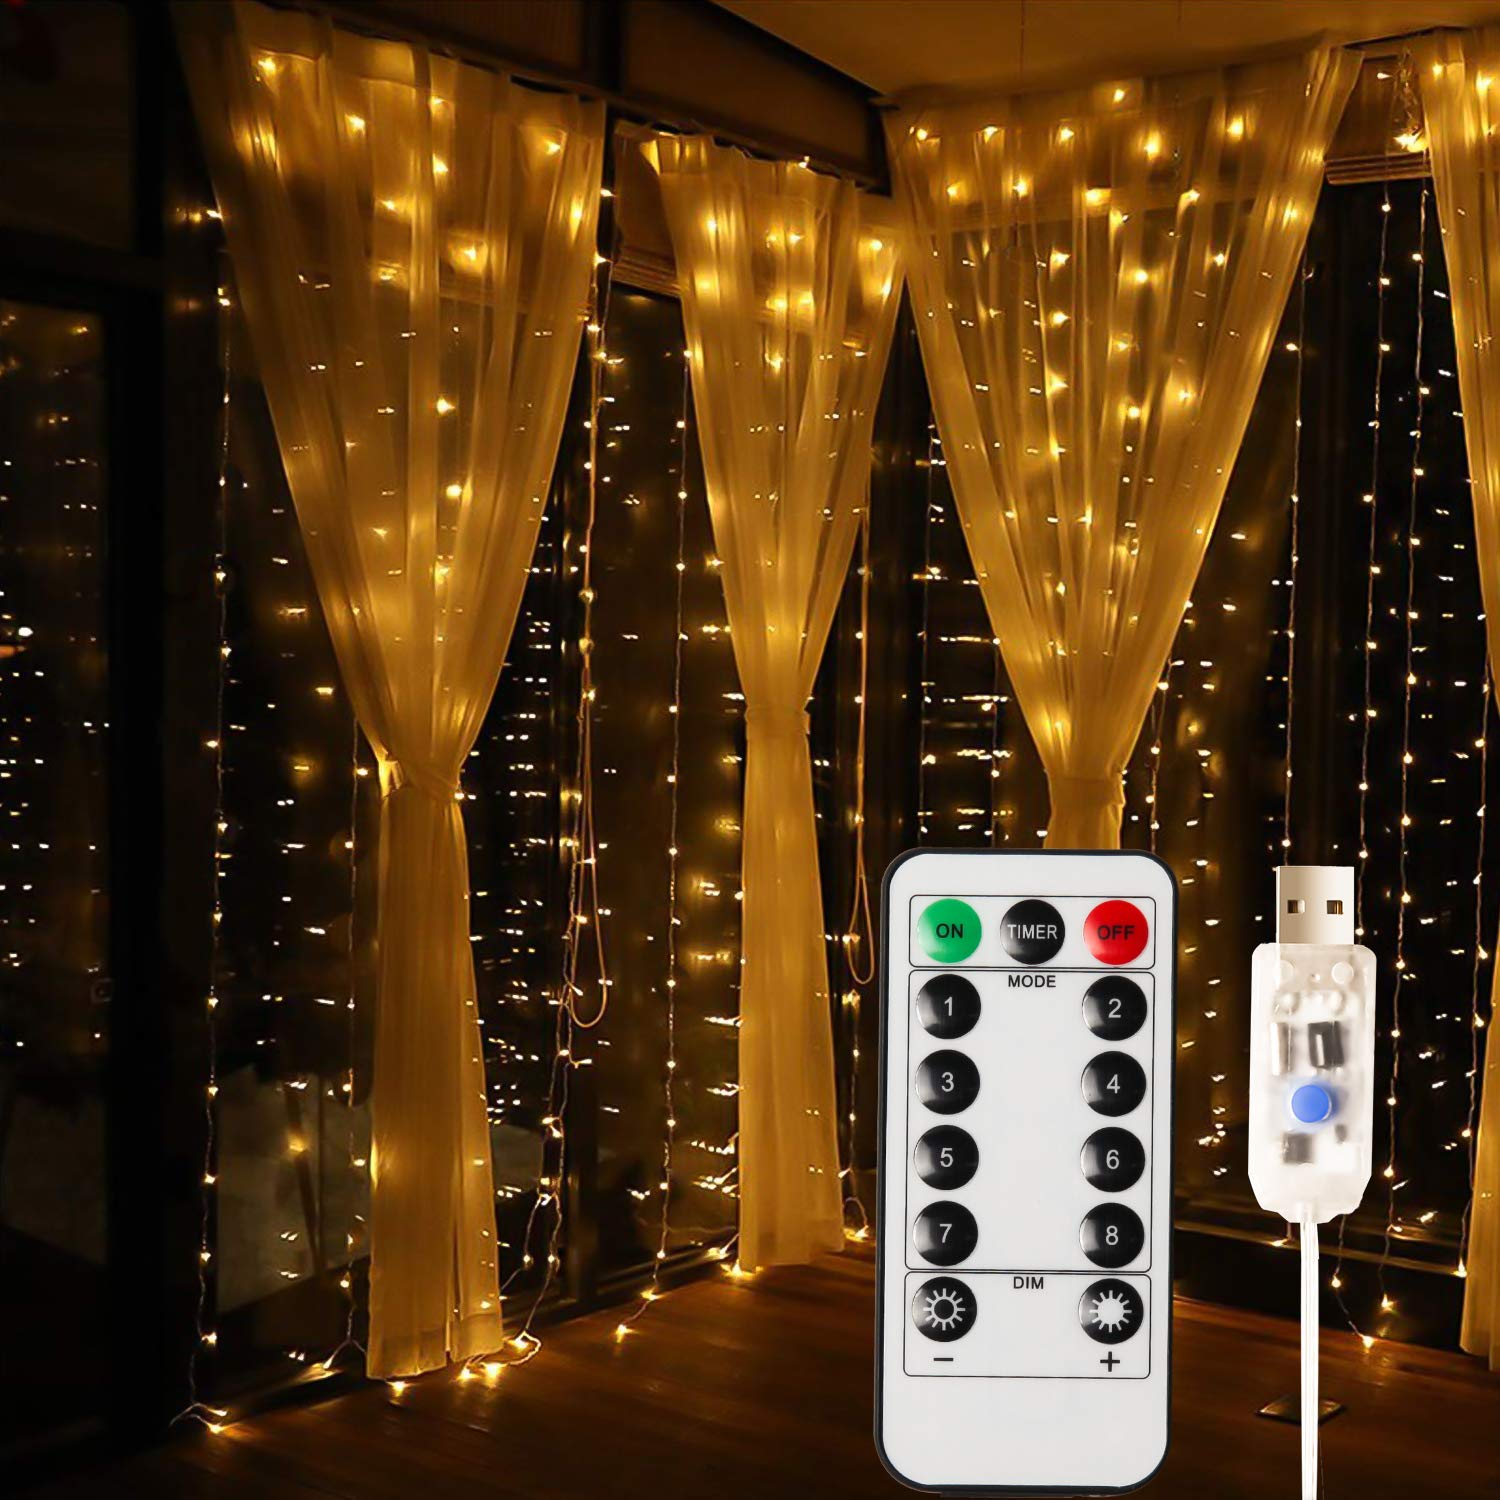 MagicLux Tech USB 300 LED Curtain Light with 8 Modes with Remote Controller Decoration for Dining Room